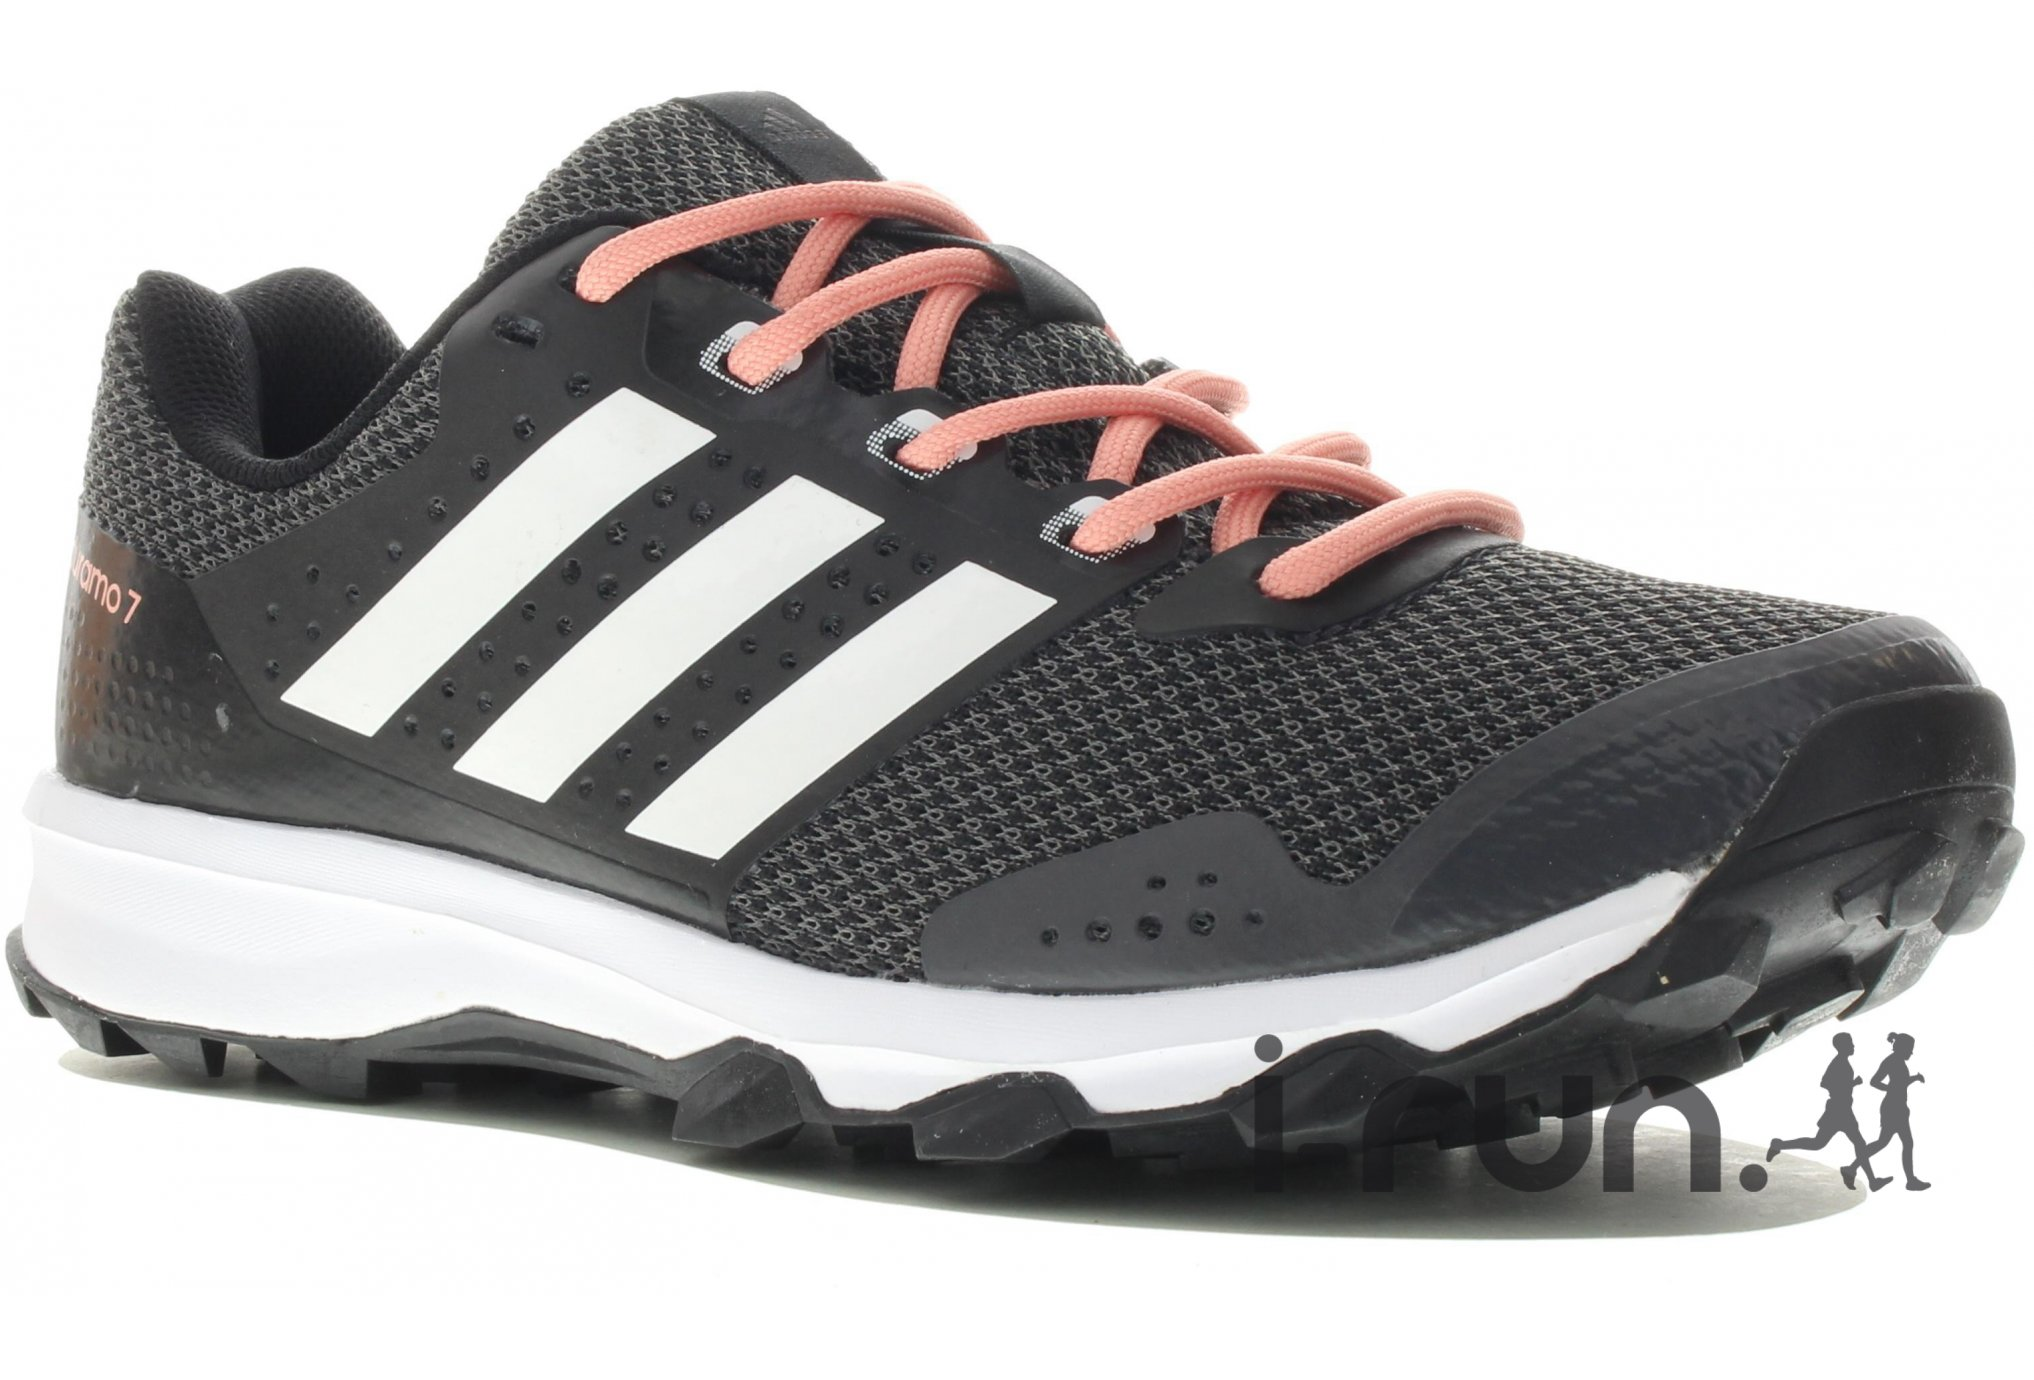 Adidas duramo 7 <strong>trail</strong> w chaussures running femme